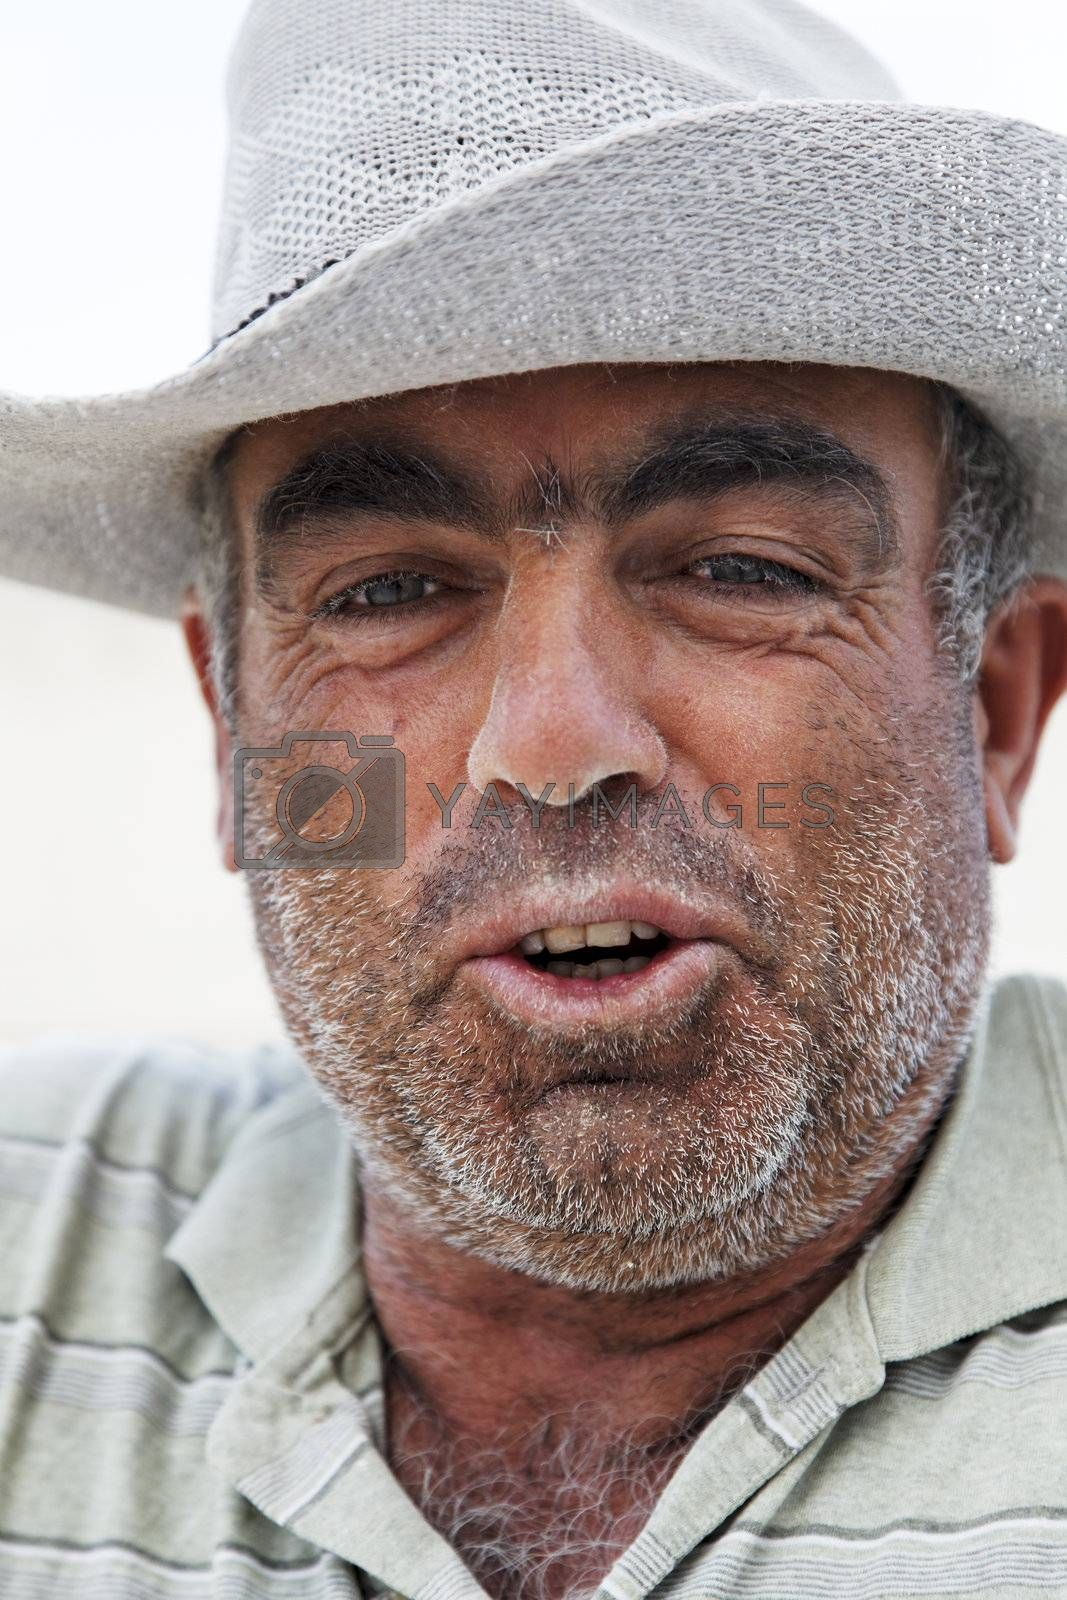 Goreme, Turkey - June, 2011: Portrait of weather beaten unshaven face of a senior gent Turkish builder with a dusty tanned face wearing a wide rimmed hat for protection against the sun, vertical close crop